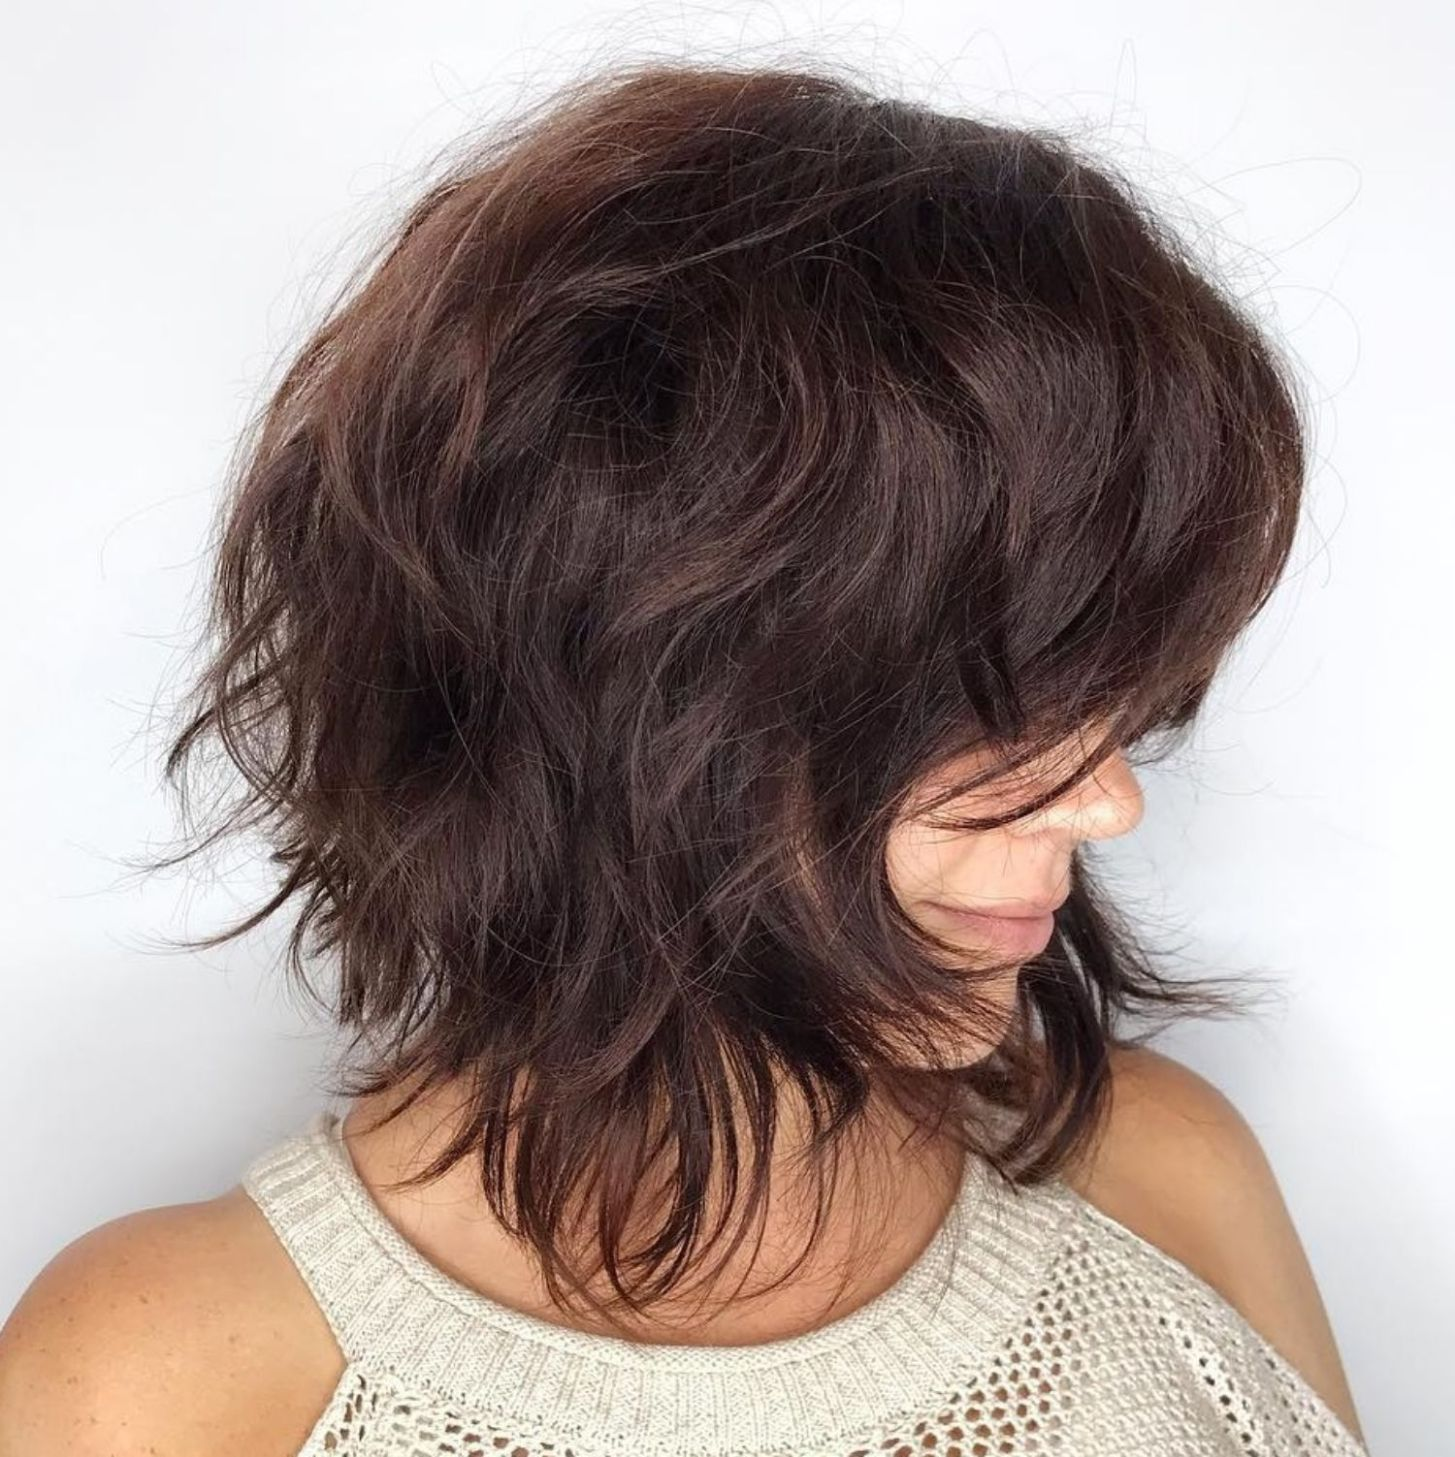 60 Most Beneficial Haircuts For Thick Hair Of Any Length Haircut For Thick Hair Thick Hair Styles Shag Bob Haircut